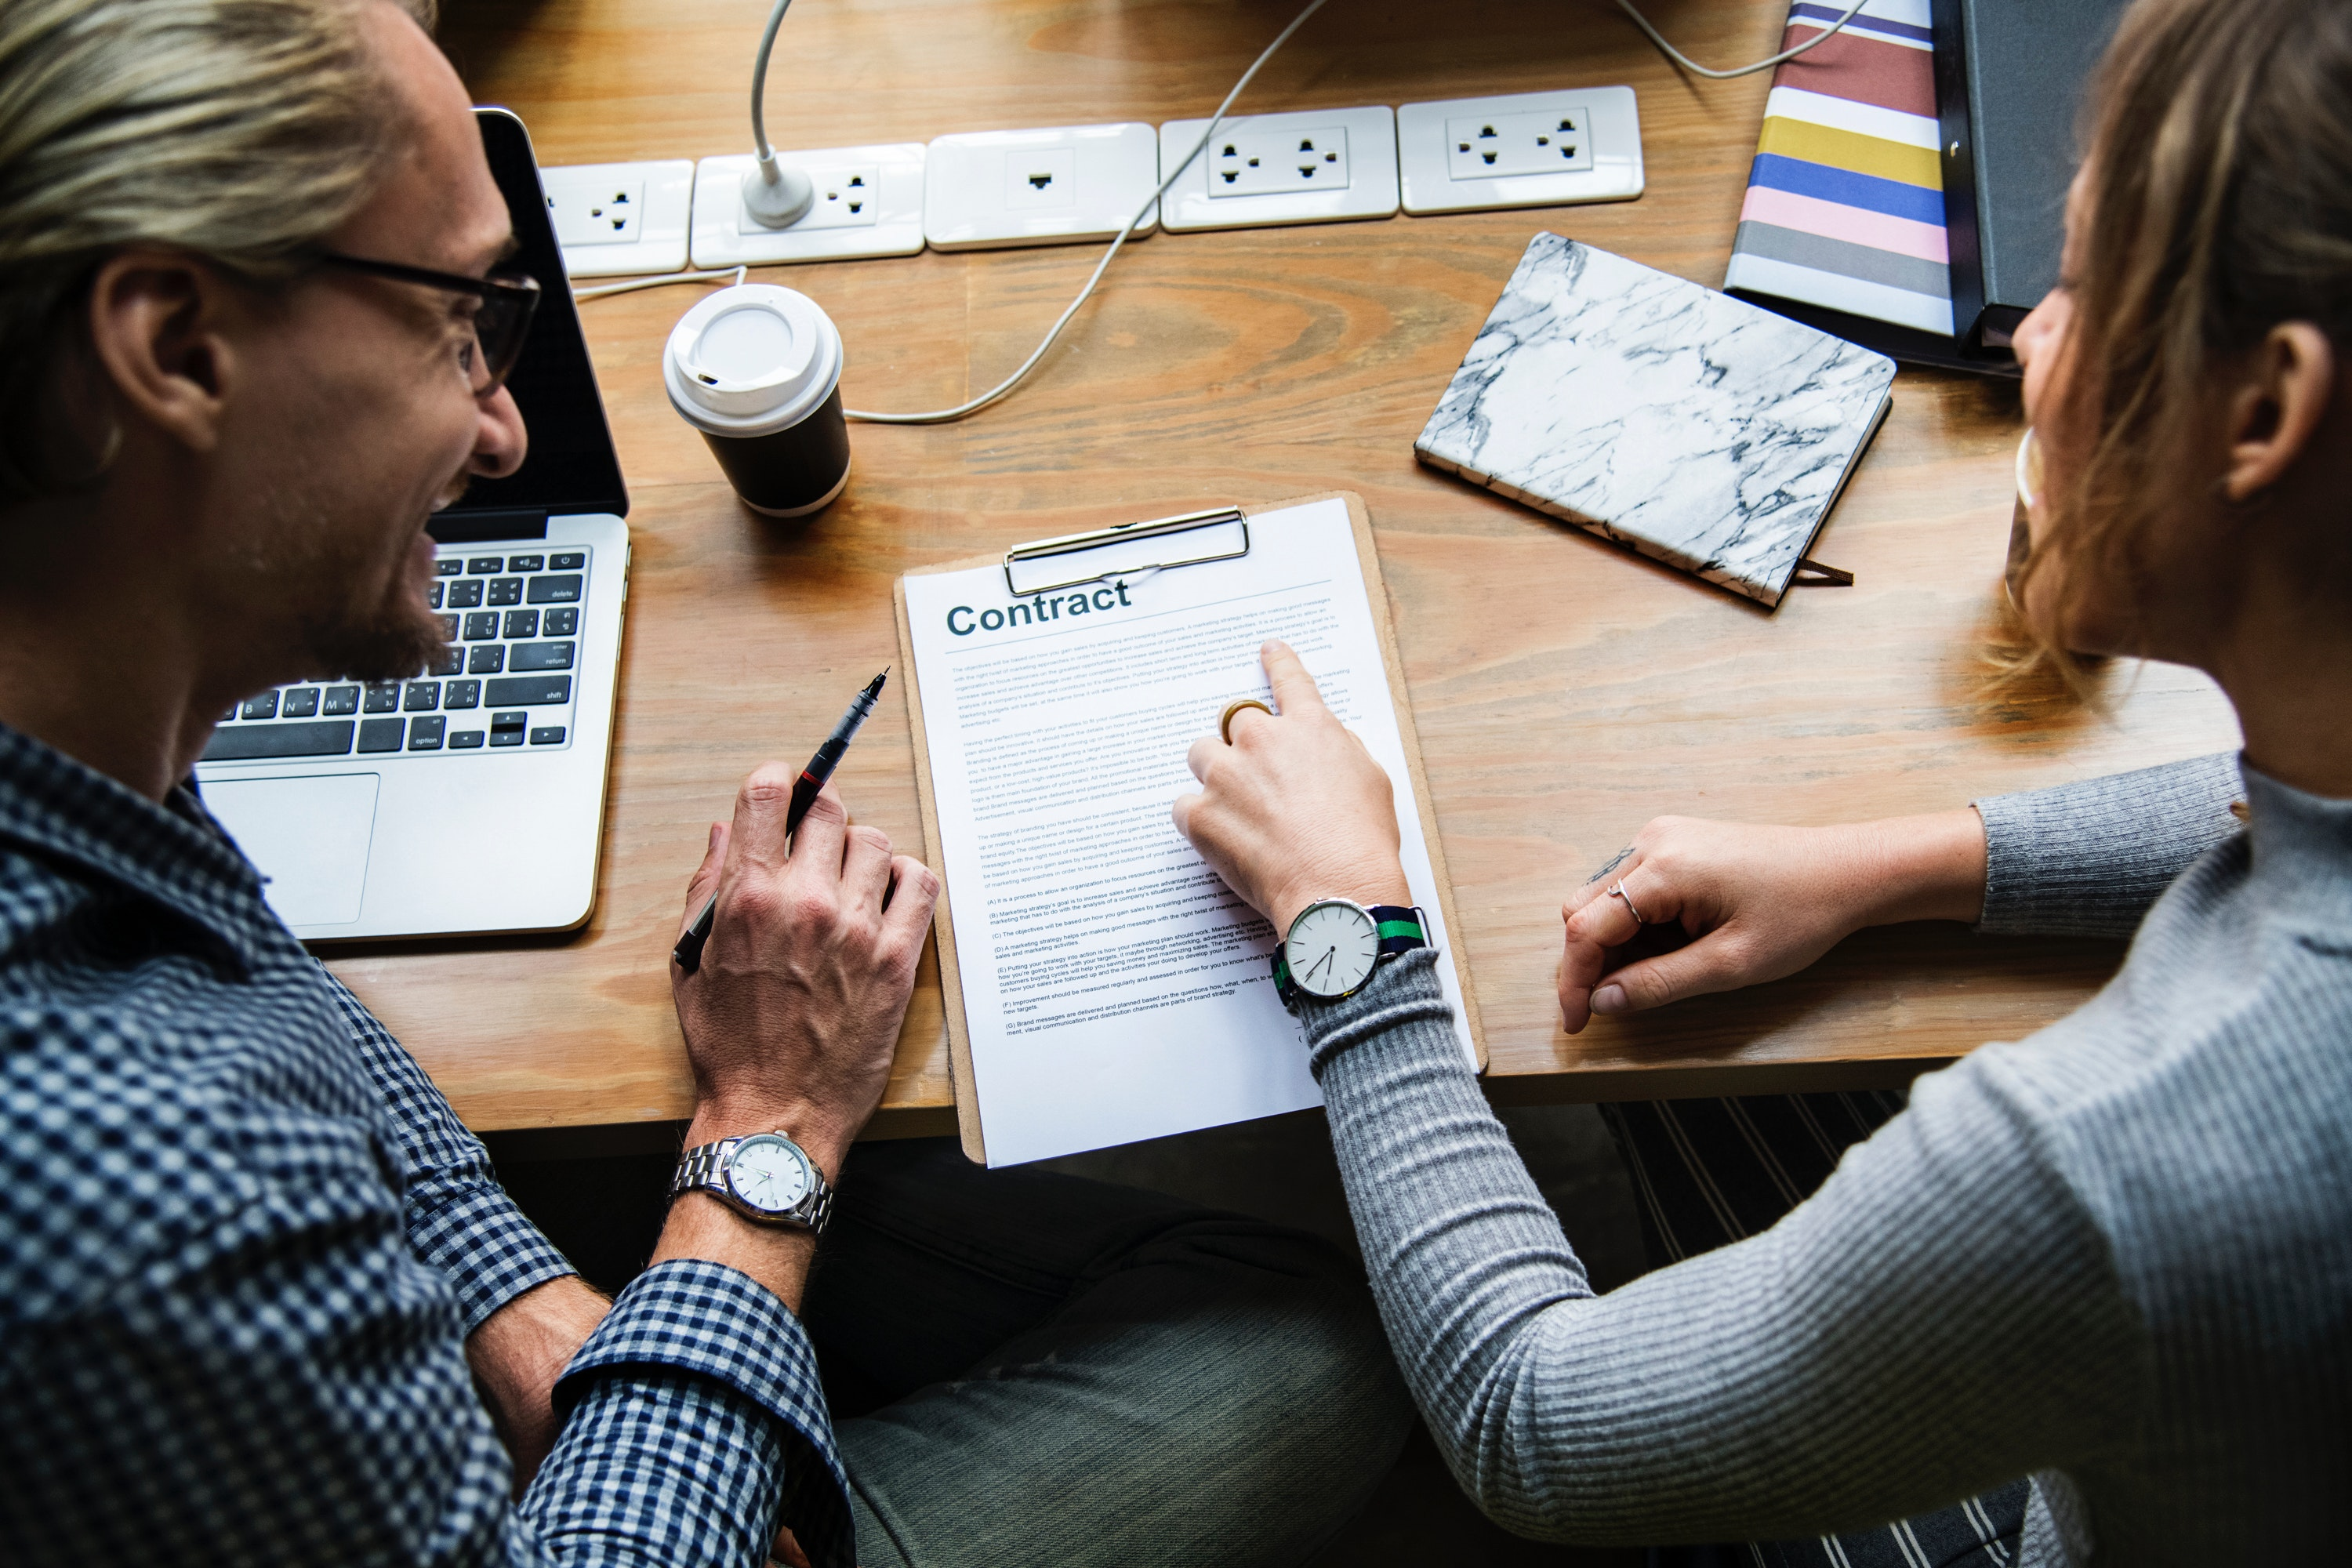 5 Best Free Contract Management Software in 2019